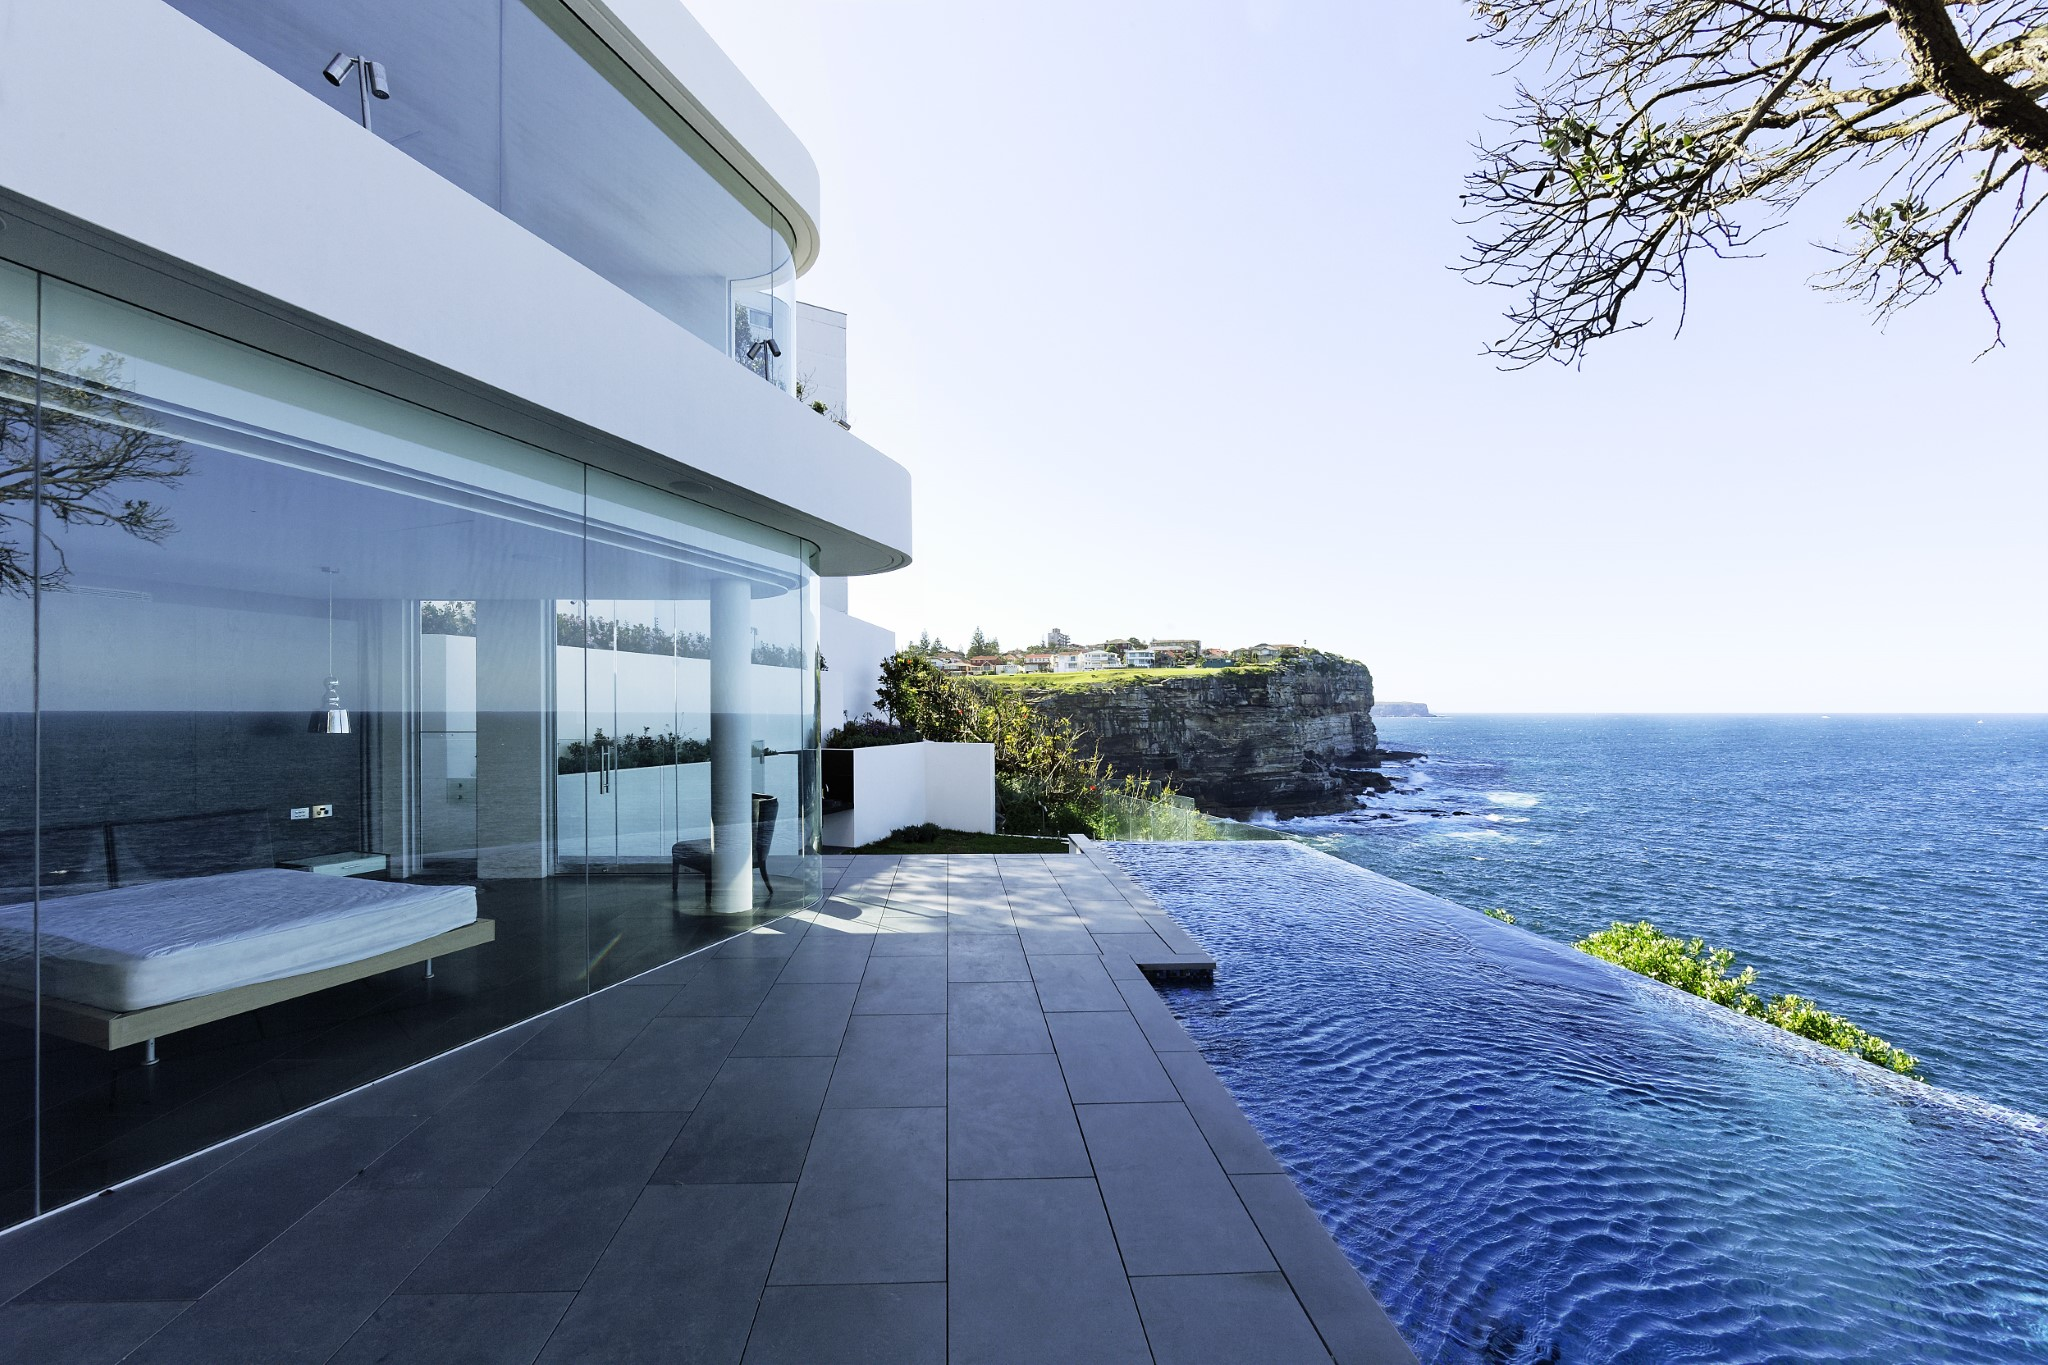 Private luxurious Infinite pool with an amazing seaview in Vaucluse